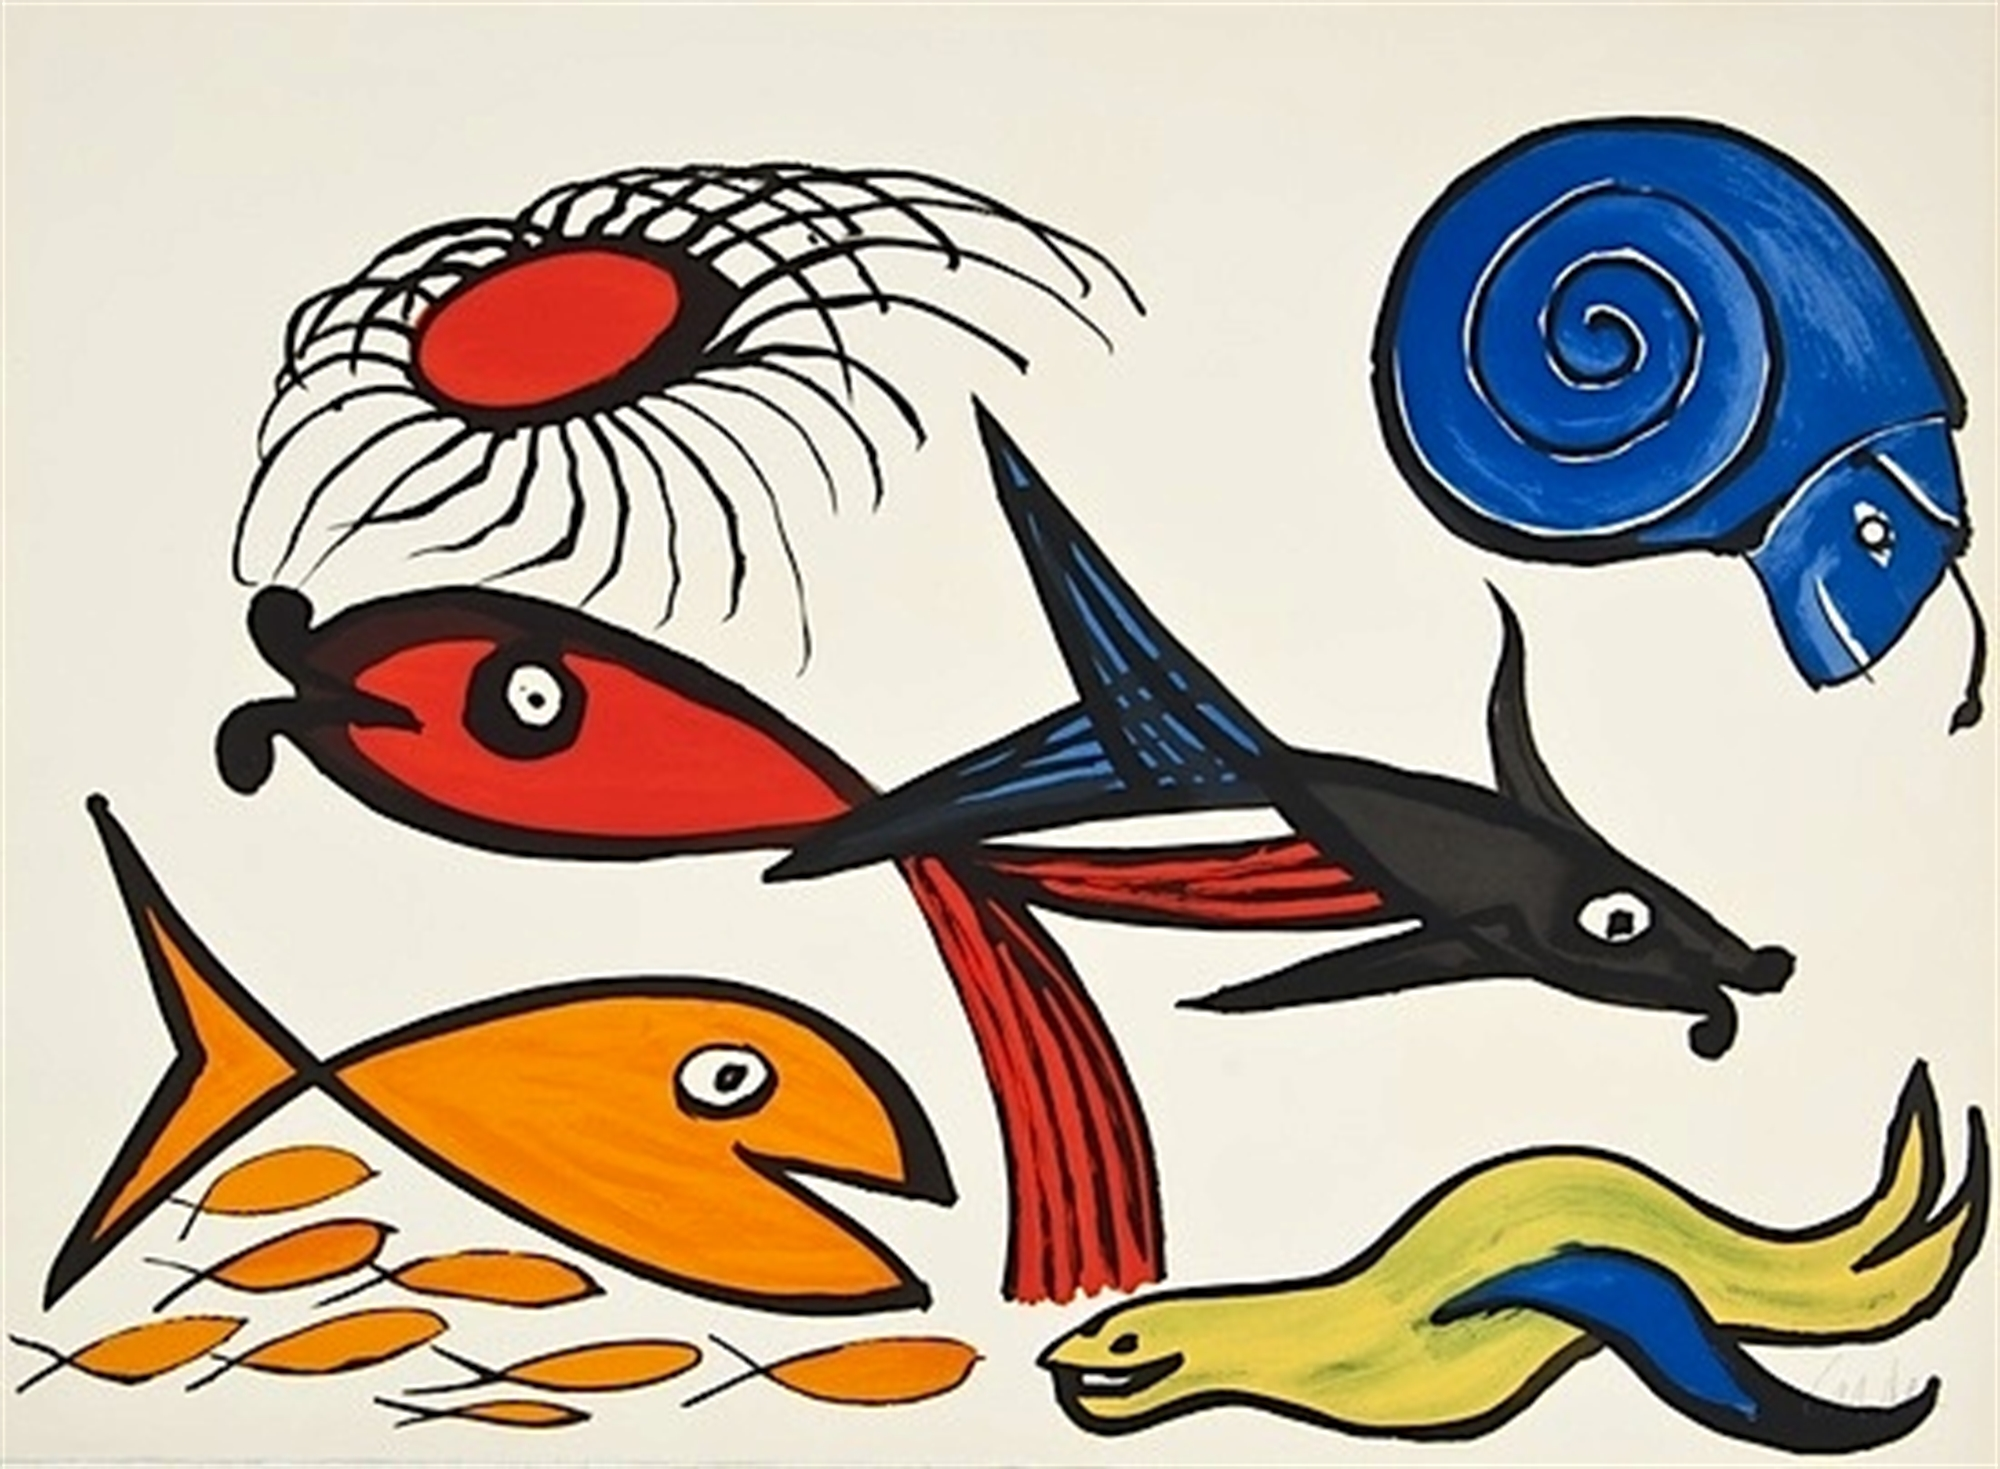 Sea Creatures - Seal by Alexander Calder